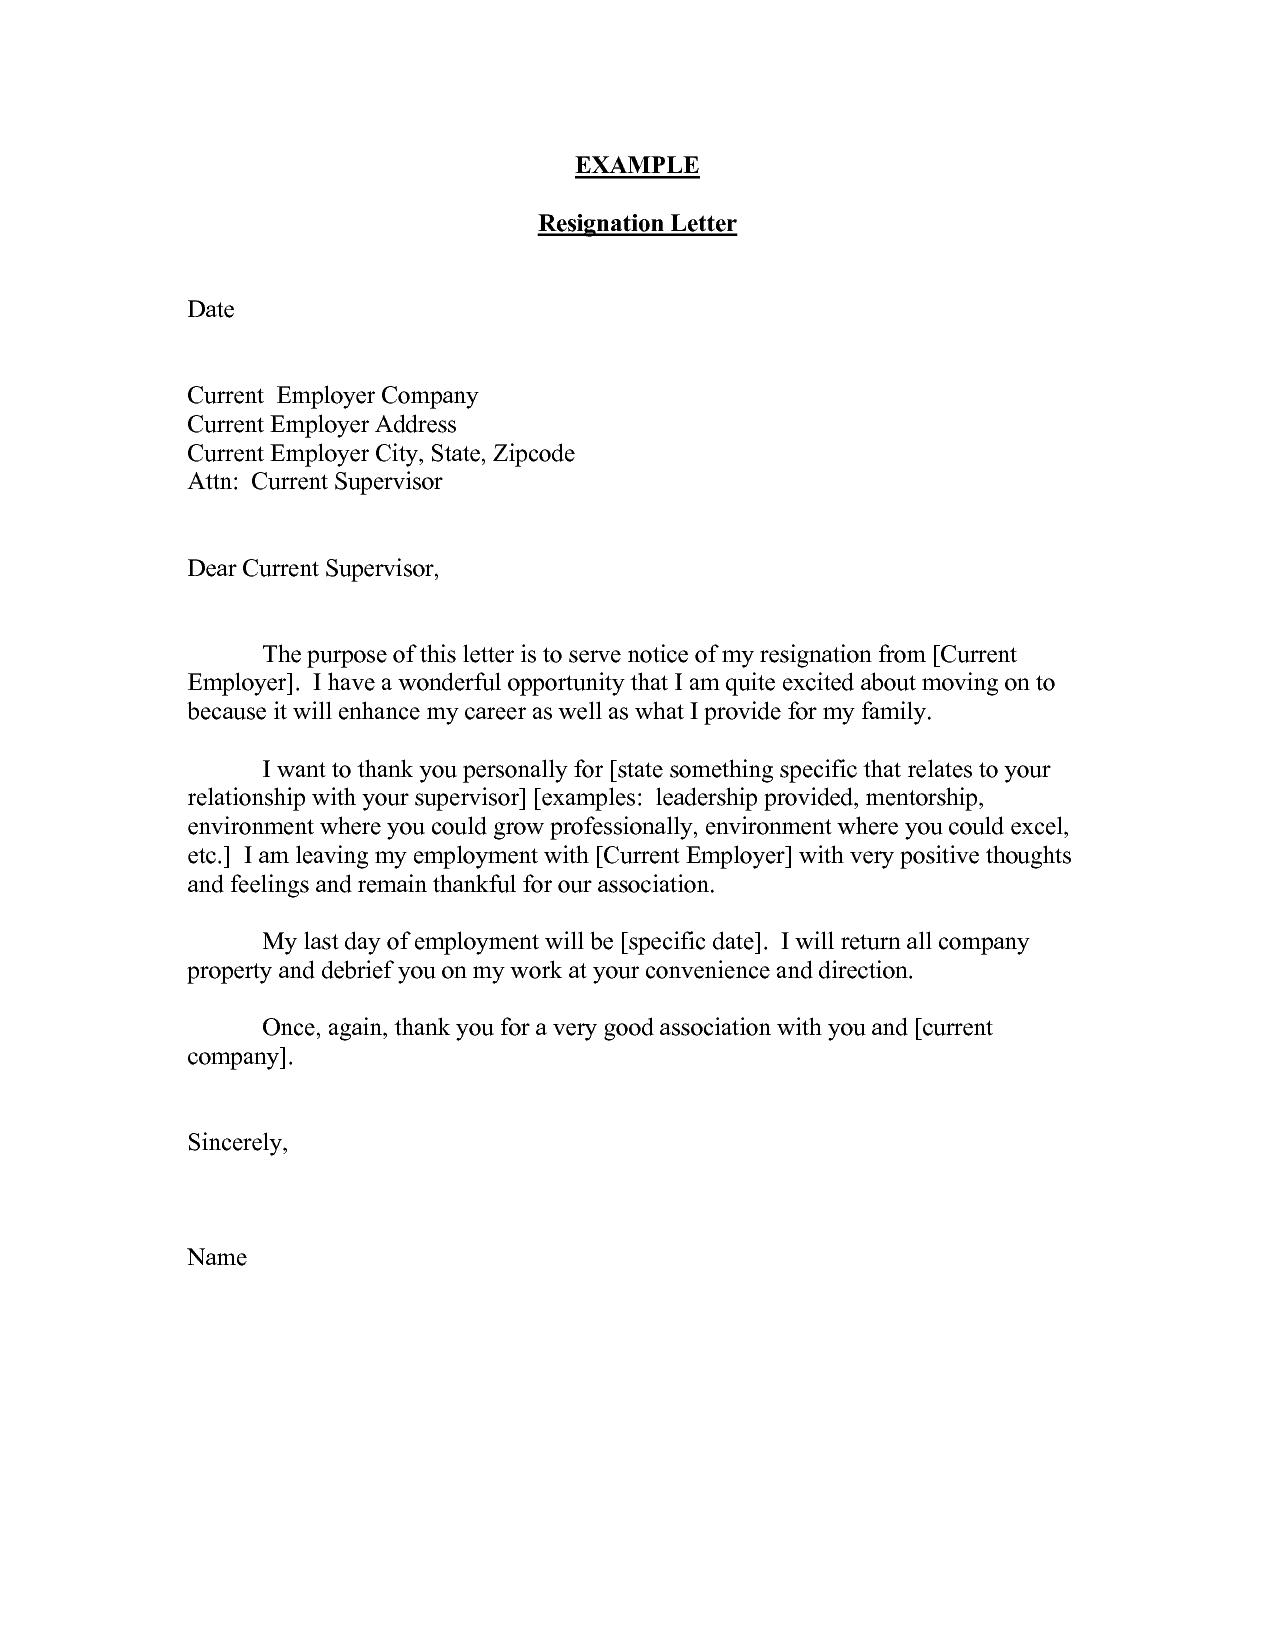 an example of a resignation letter to the employer